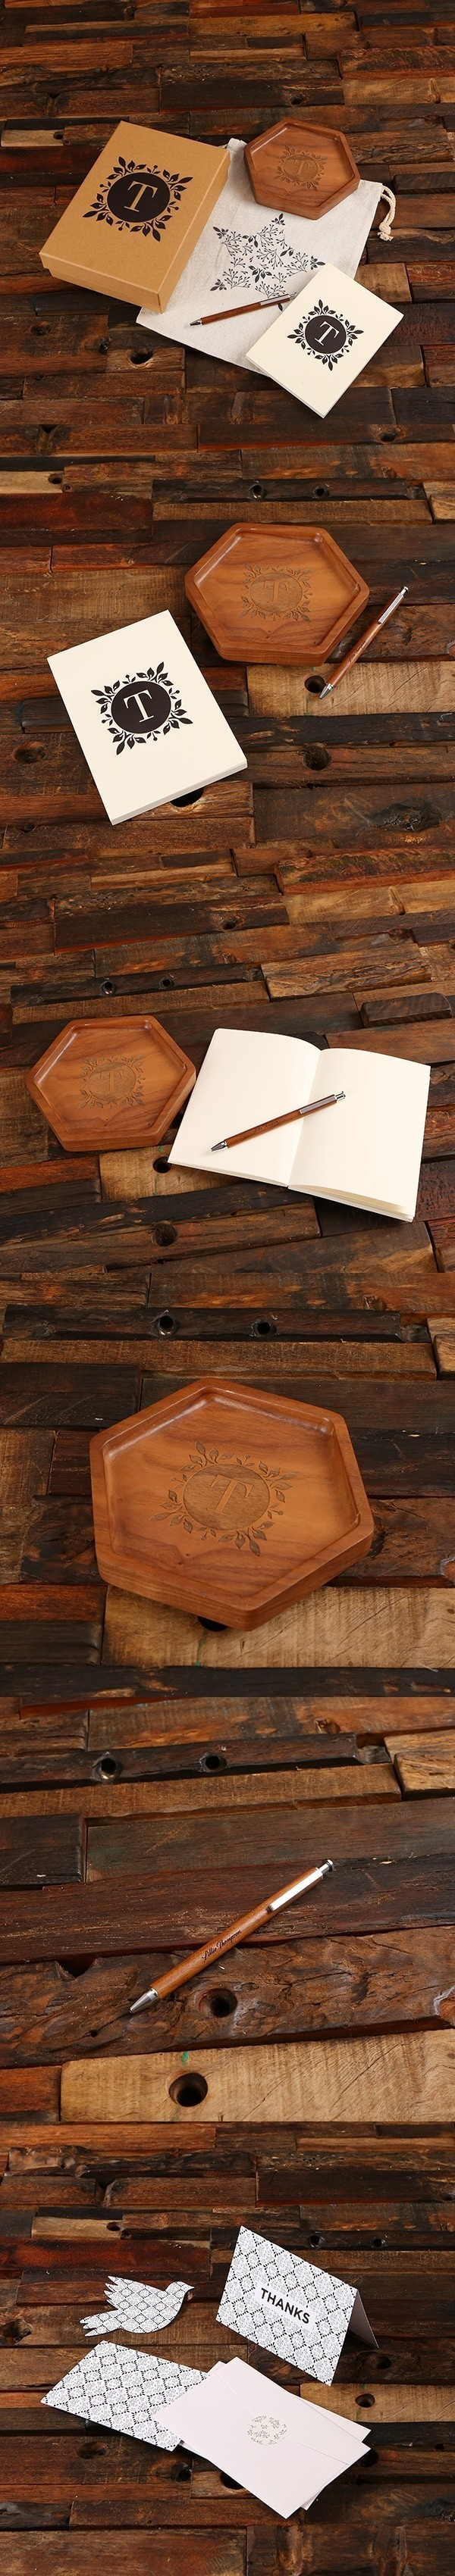 Monogrammed Gift-Set with Wood Desk Tray, Pen and Journal in Kraft Box